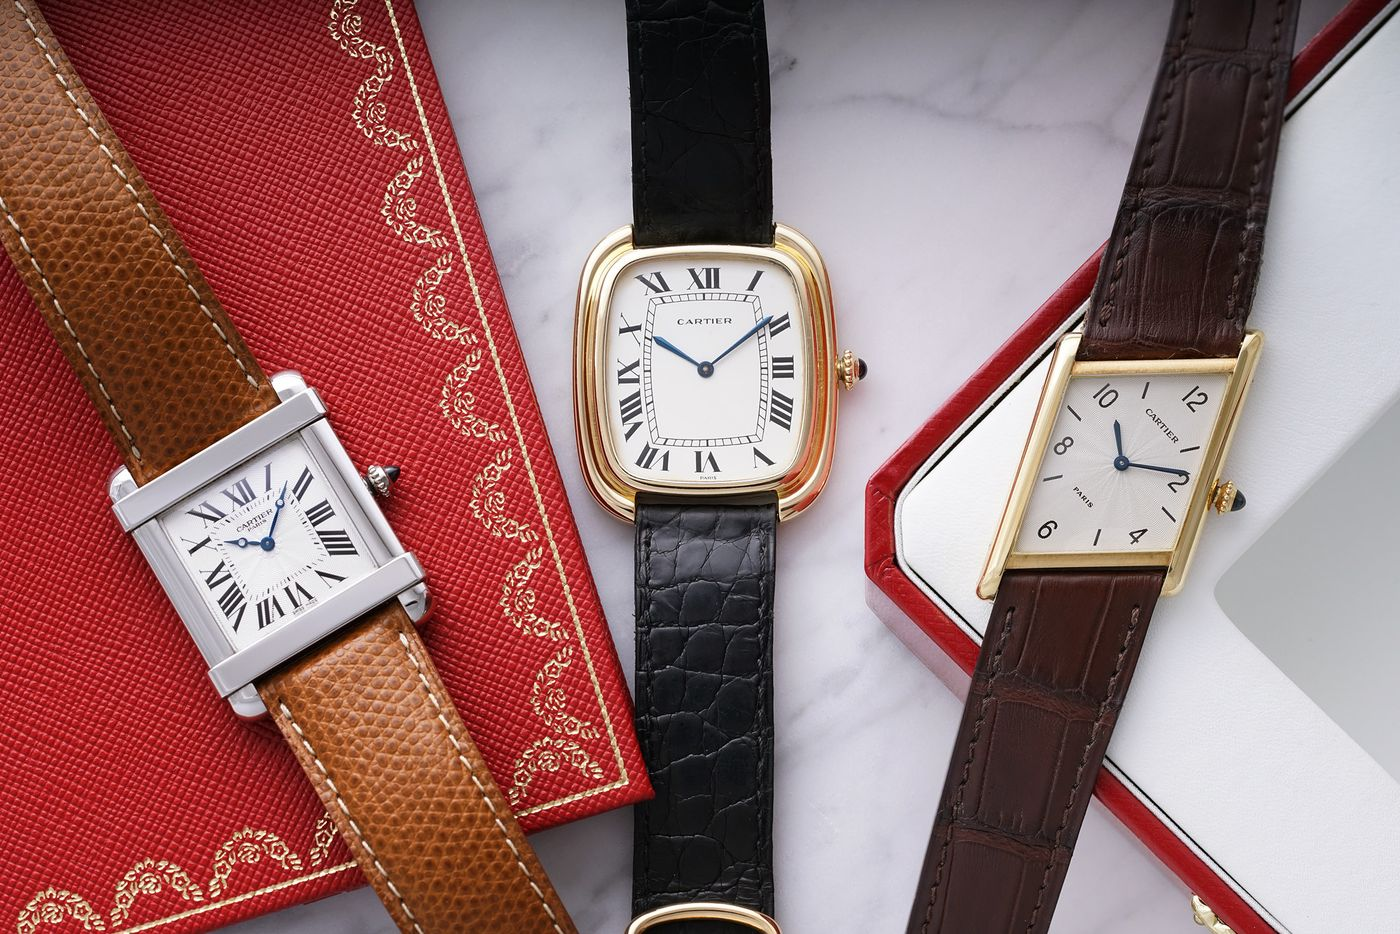 Ahead of The Gevena Watch Auction: XI, renowned author and watch journalist Nick Foulkes pens a declaration of love for the timeless beauty of Cartier's shape-shifting wristwatches.